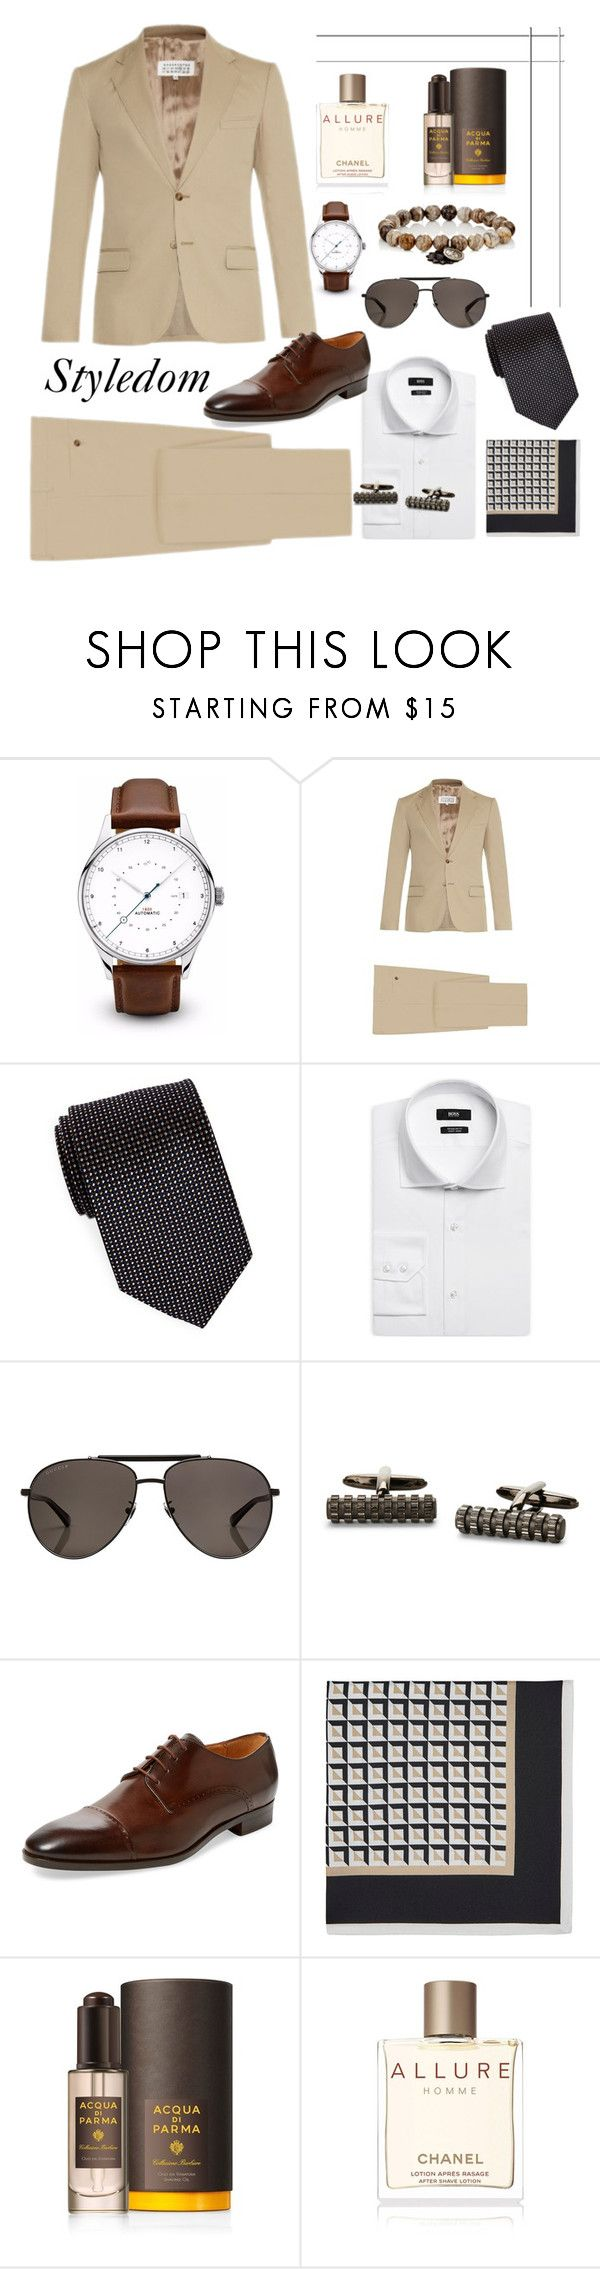 """Daytime wedding"" by khouryolivia ❤ liked on Polyvore featuring Maison Margiela, BLACK BROWN 1826, HUGO, Gucci, Kenneth Cole Reaction, Saks Fifth Avenue, Bigi, Acqua di Parma, Chanel and Miracle Icons"